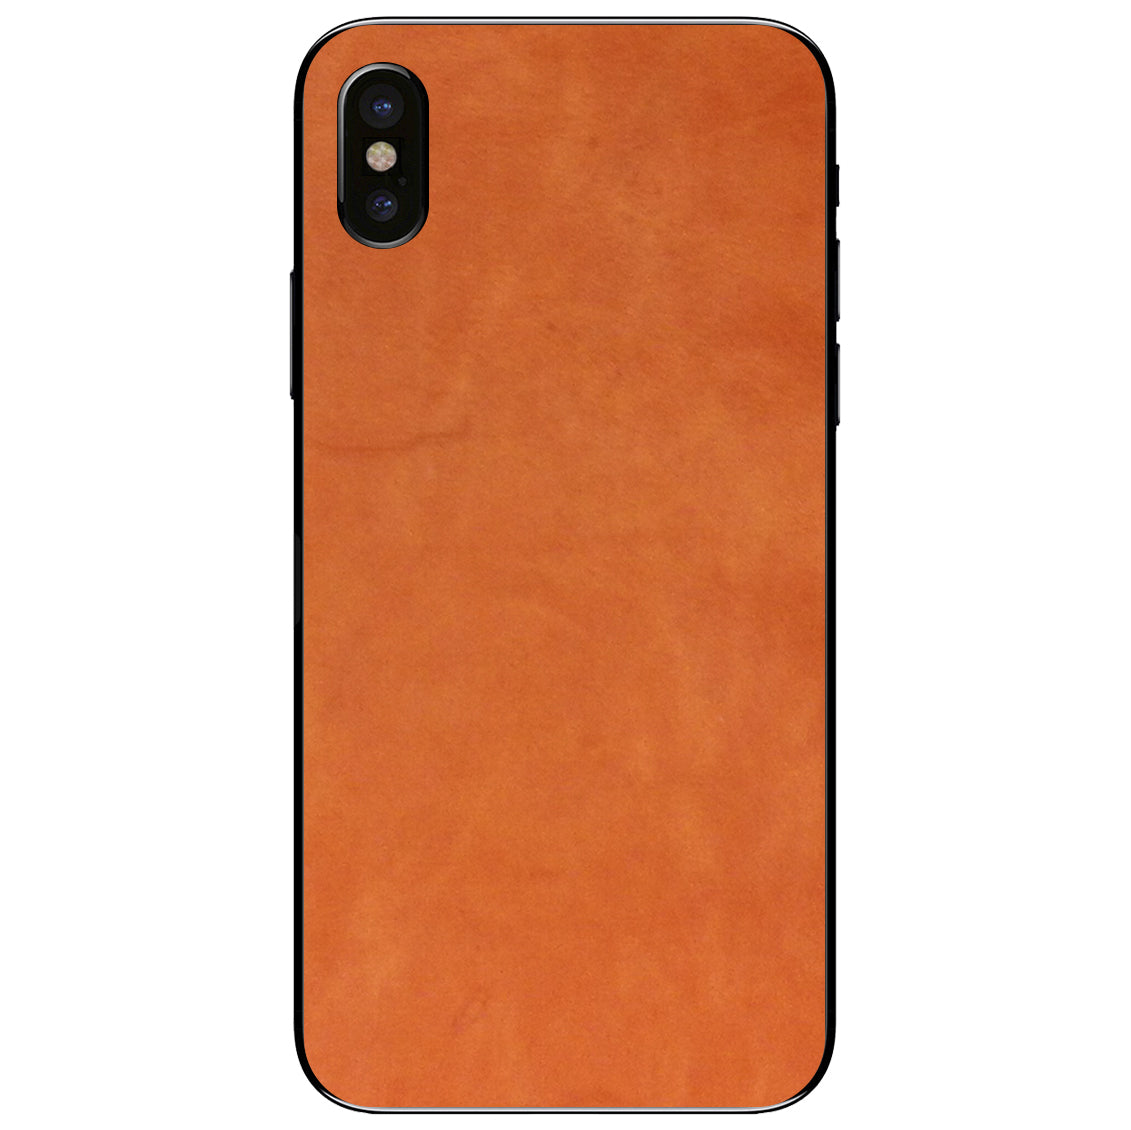 Brandy iPhone XS Leather Skin